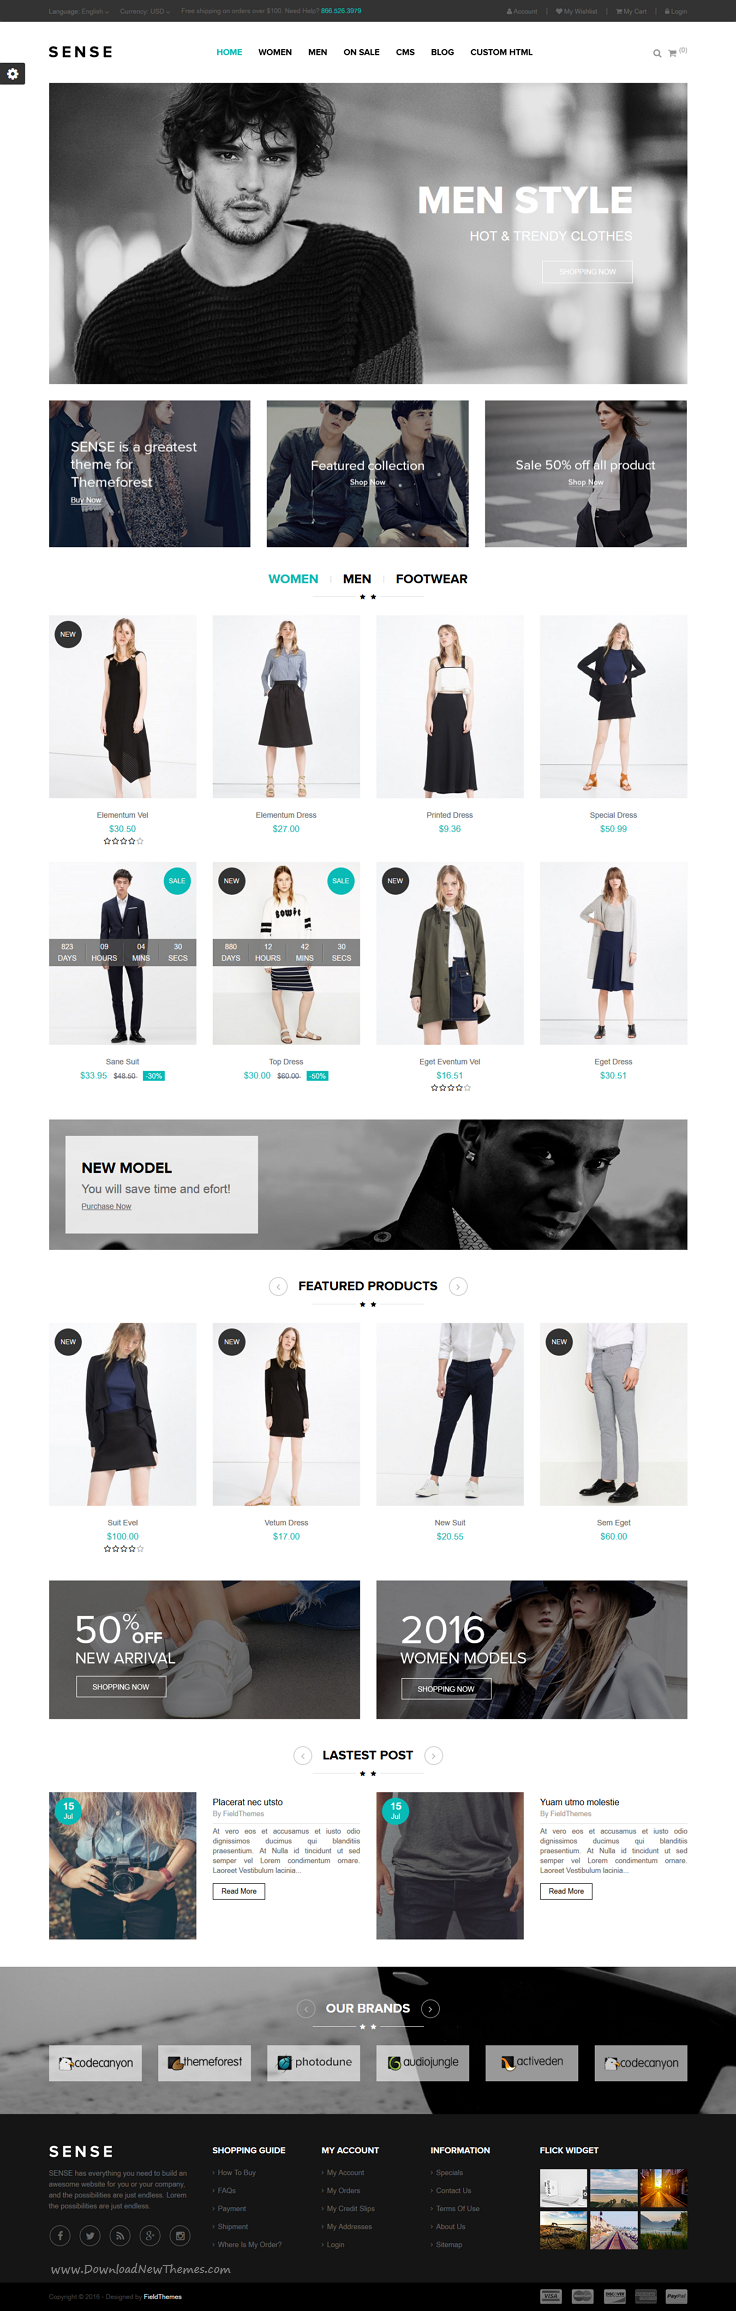 Sense is elegant and modern responsive 4 in 1 #Prestashop theme for multipurpose #onlineshop eCommerce website download now➝ https://themeforest.net/item/sense-responsive-prestashop-theme/16807048?ref=Datasata